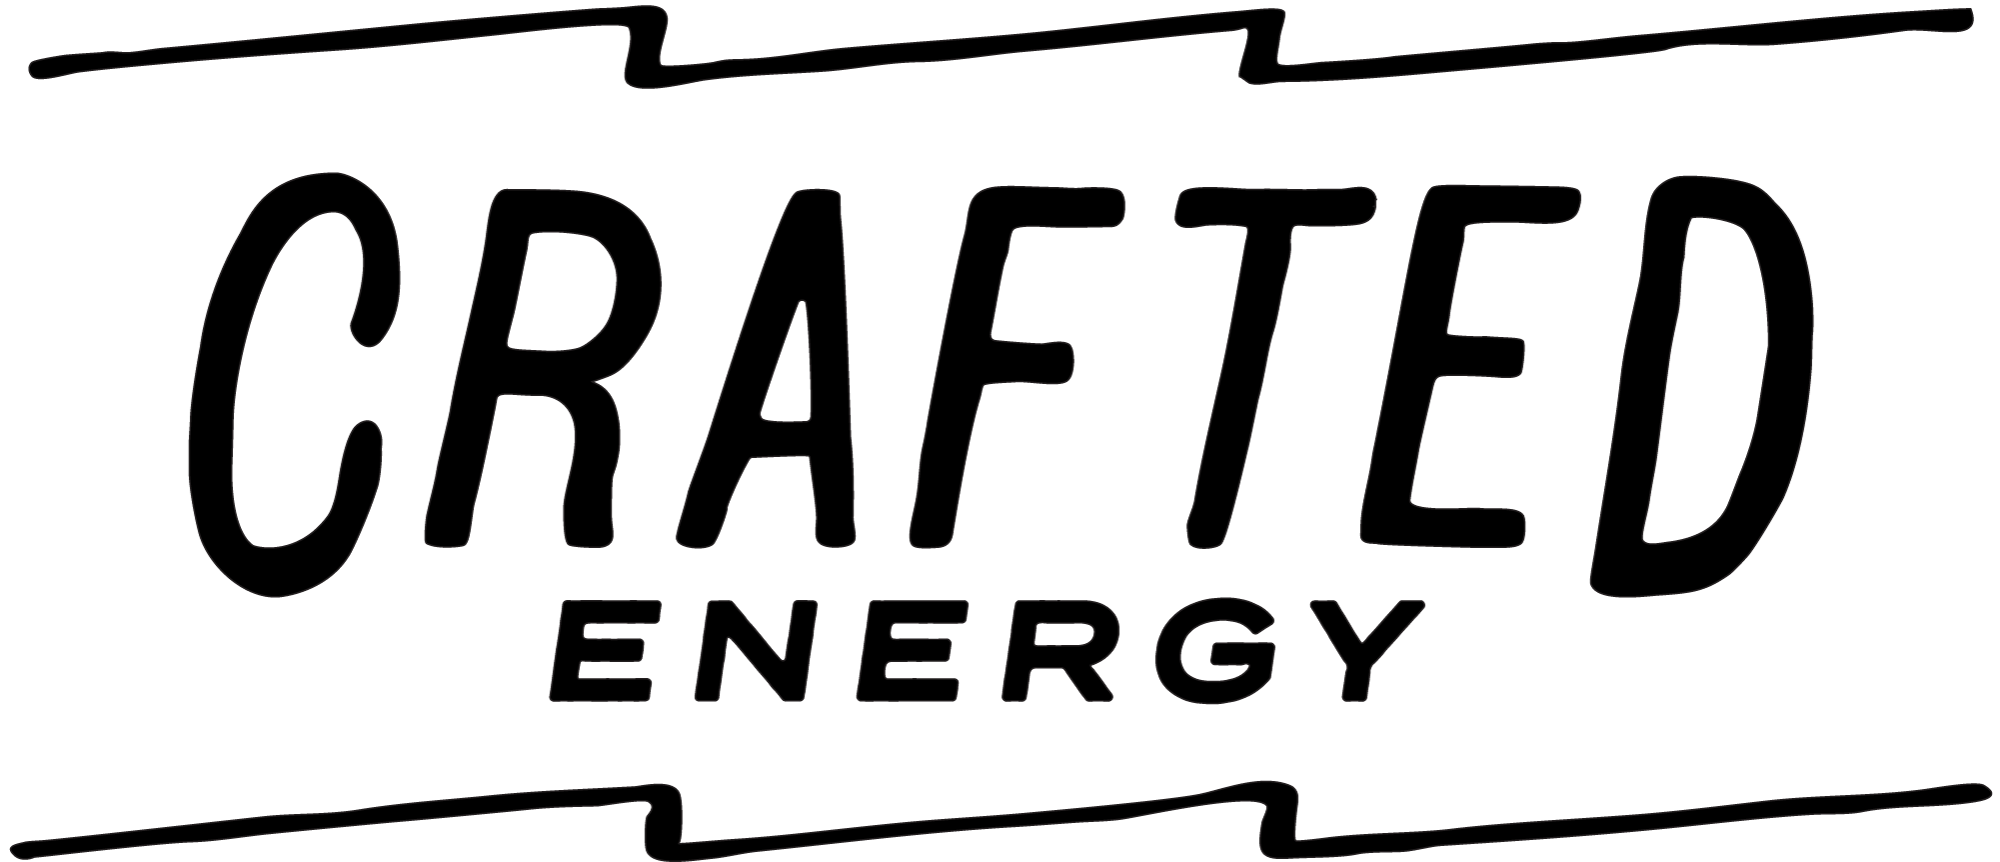 Crafted-Energy-Logo-Alt-1.png